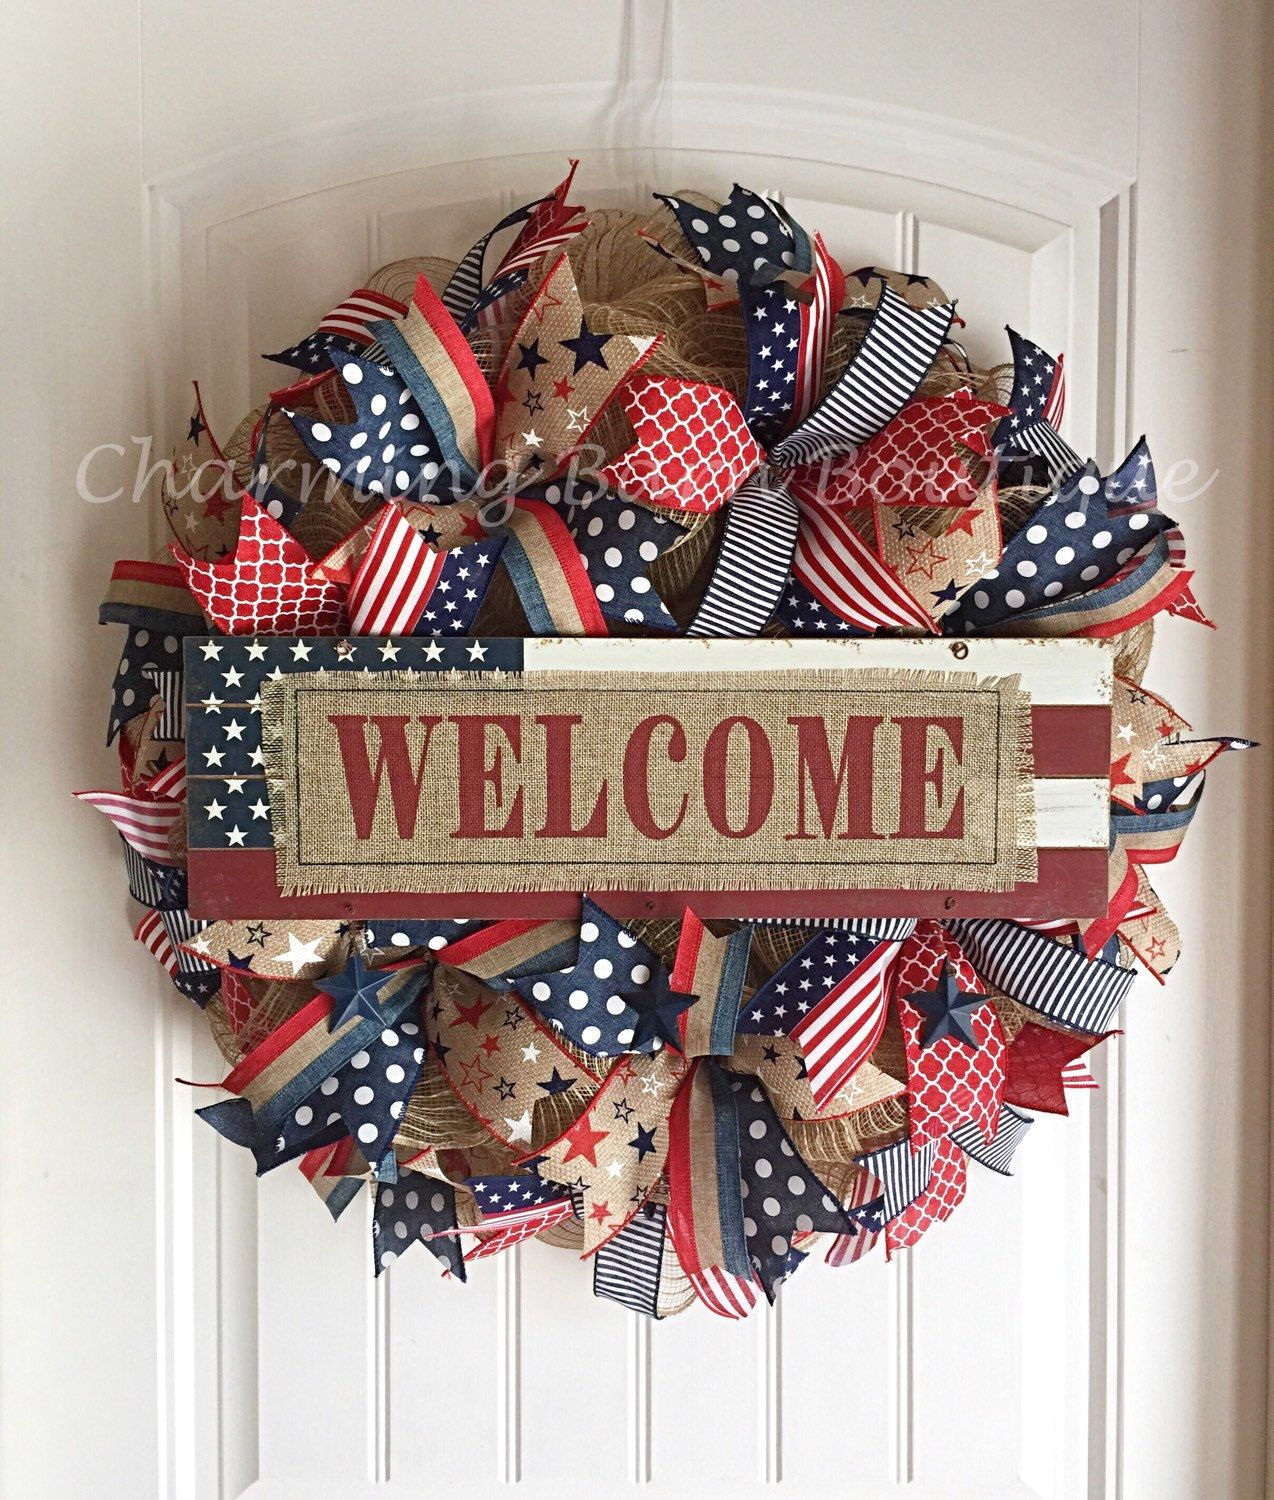 4th of July Wreath, July 4th Wreath, Welcome Wreath, Memorial Day Wreath, Patriotic Wreath, Burlap Wreath, July 4th Decor, Patriotic Decor by CharmingBarnBoutique on Etsy